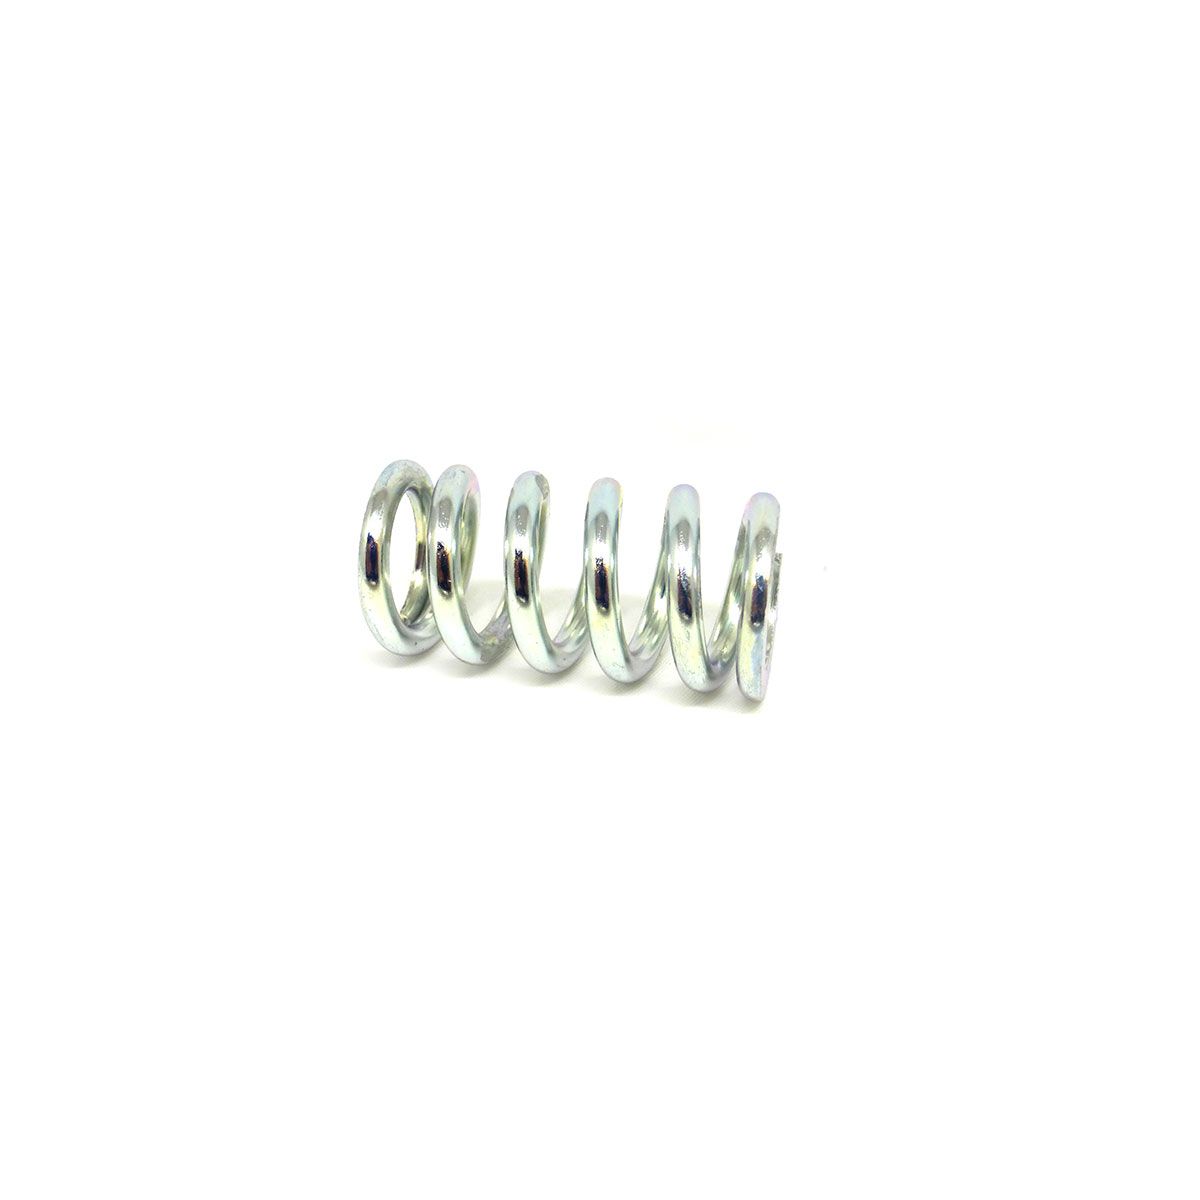 20252 Dixie Chopper Steering Lever Spring